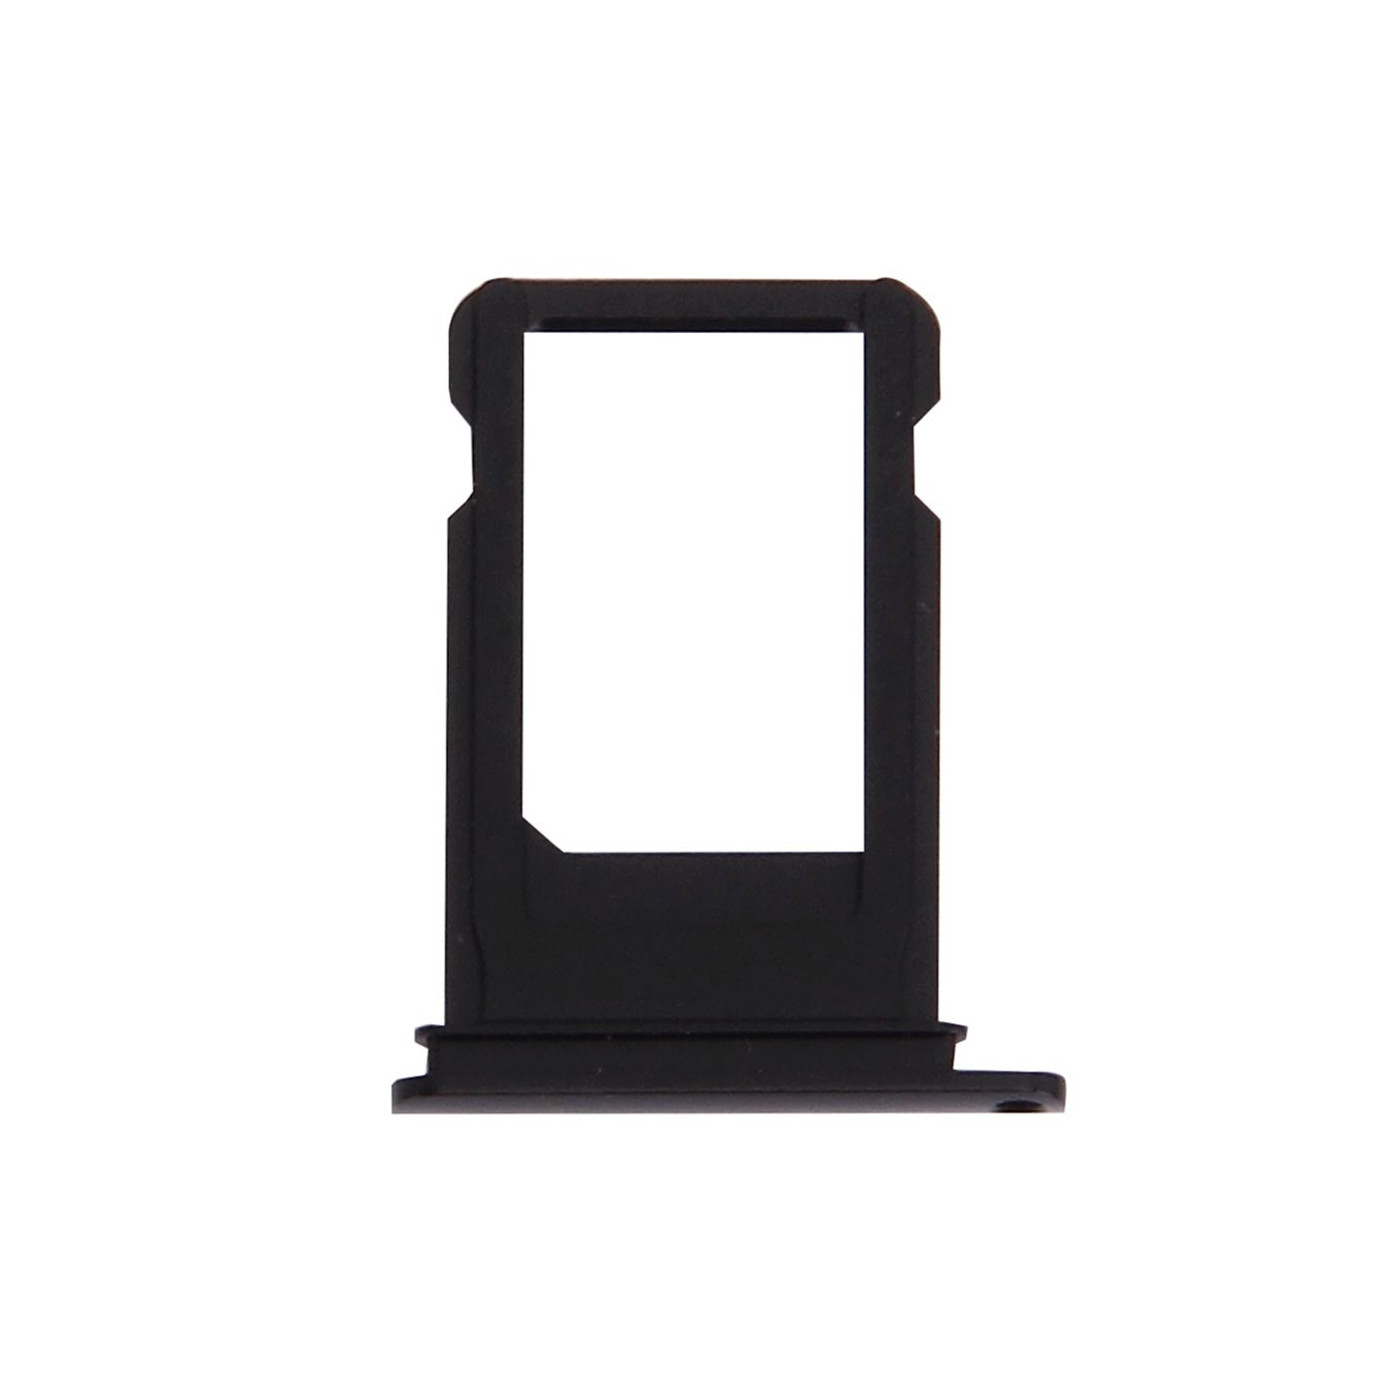 TARJETA SIM CARD Apple iPhone 7 Black SLOT SLIDE TROLLEY BANDEJA REEMPLAZO